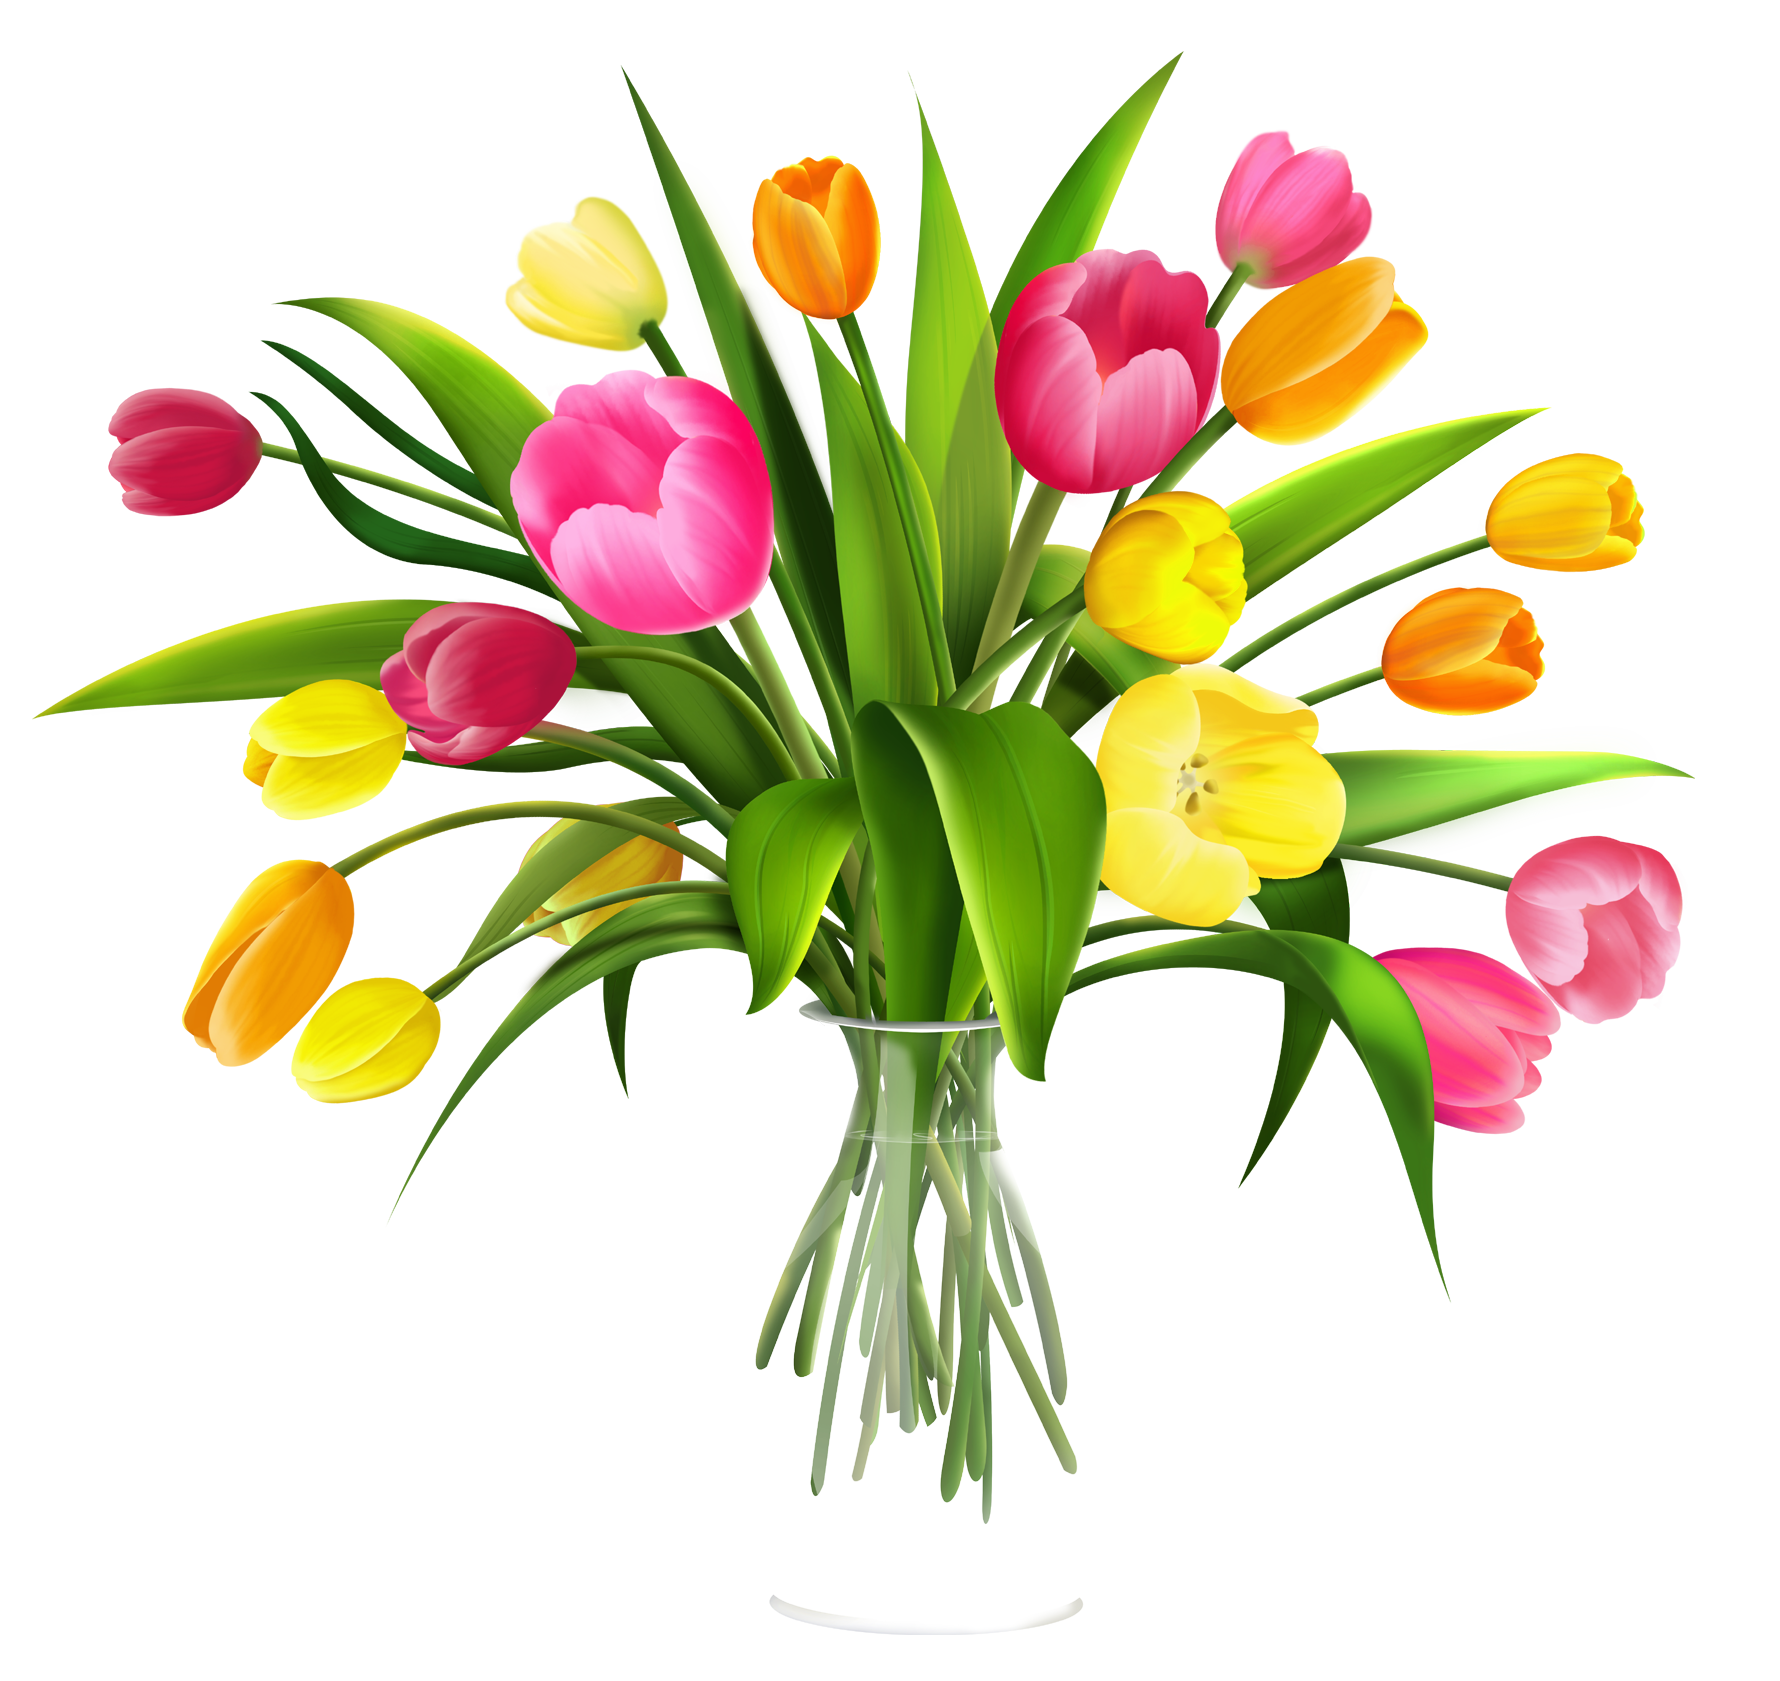 Gift clipart bunch. Free clip art flowers